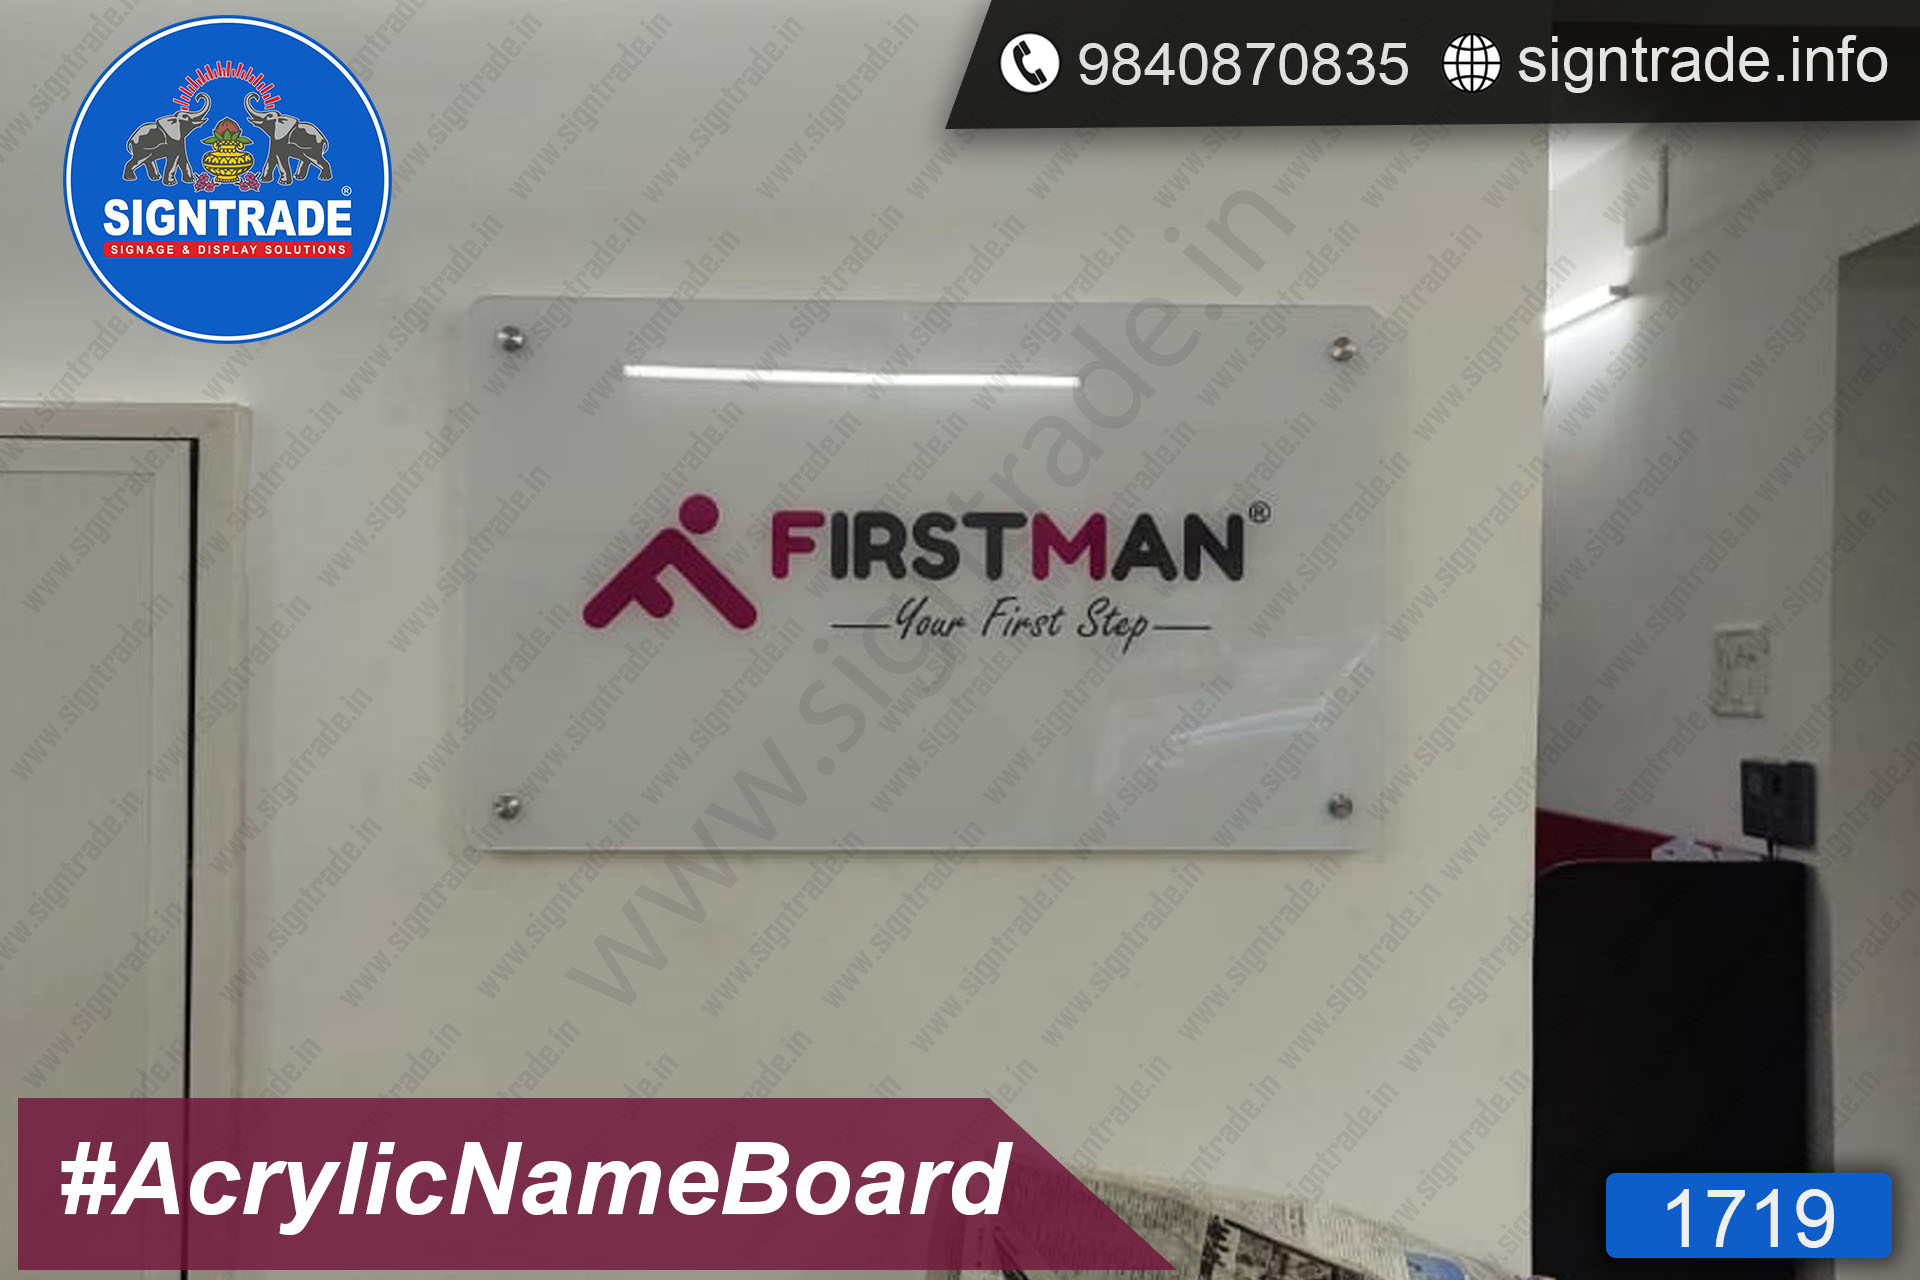 First Man, Chennai - SIGNTRADE - Acrylic Name Board, Acrylic Sandwich Board Manufacture in Chennai